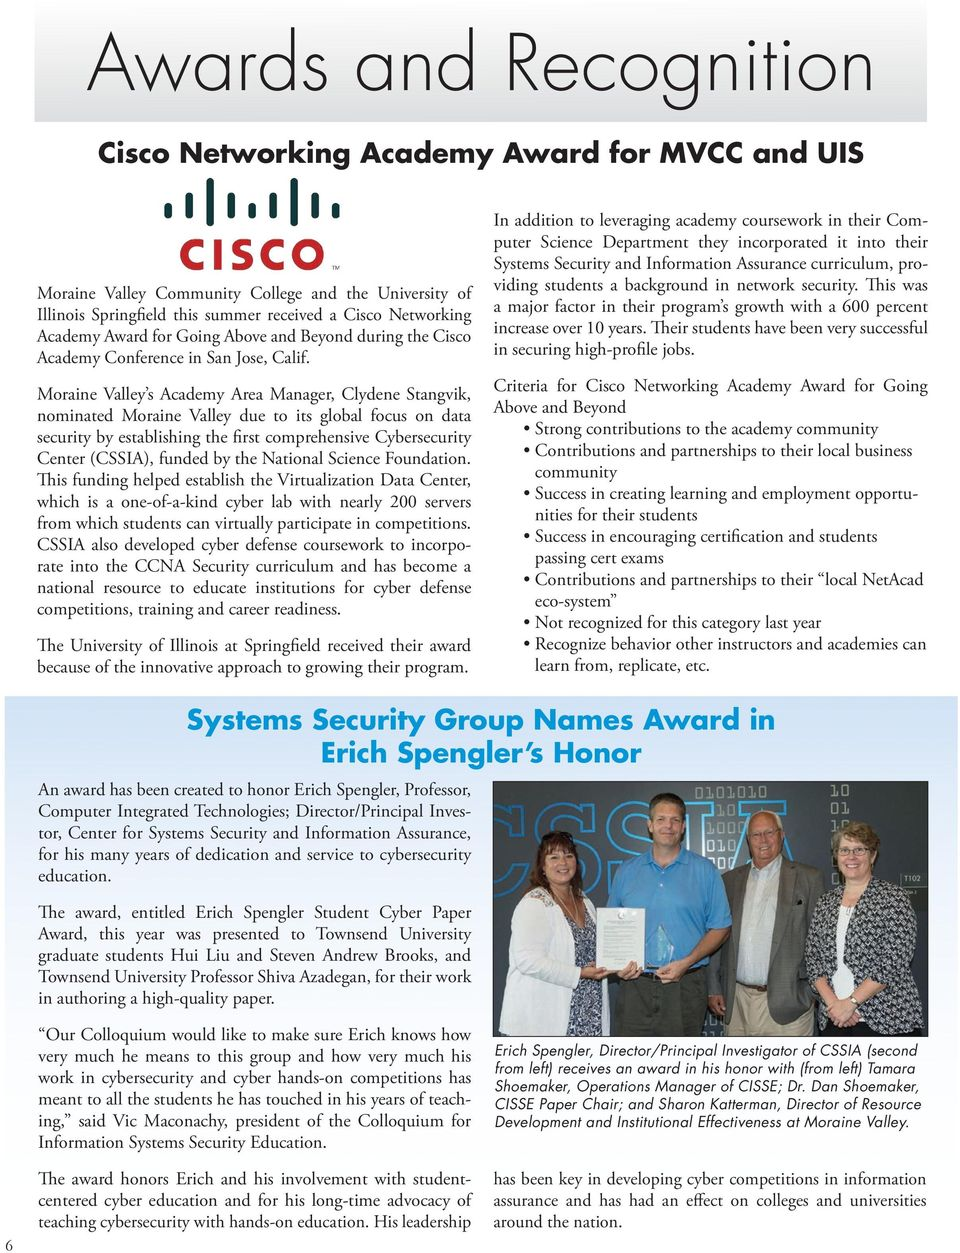 Moraine Valley s Academy Area Manager, Clydene Stangvik, nominated Moraine Valley due to its global focus on data security by establishing the first comprehensive Cybersecurity Center (CSSIA), funded